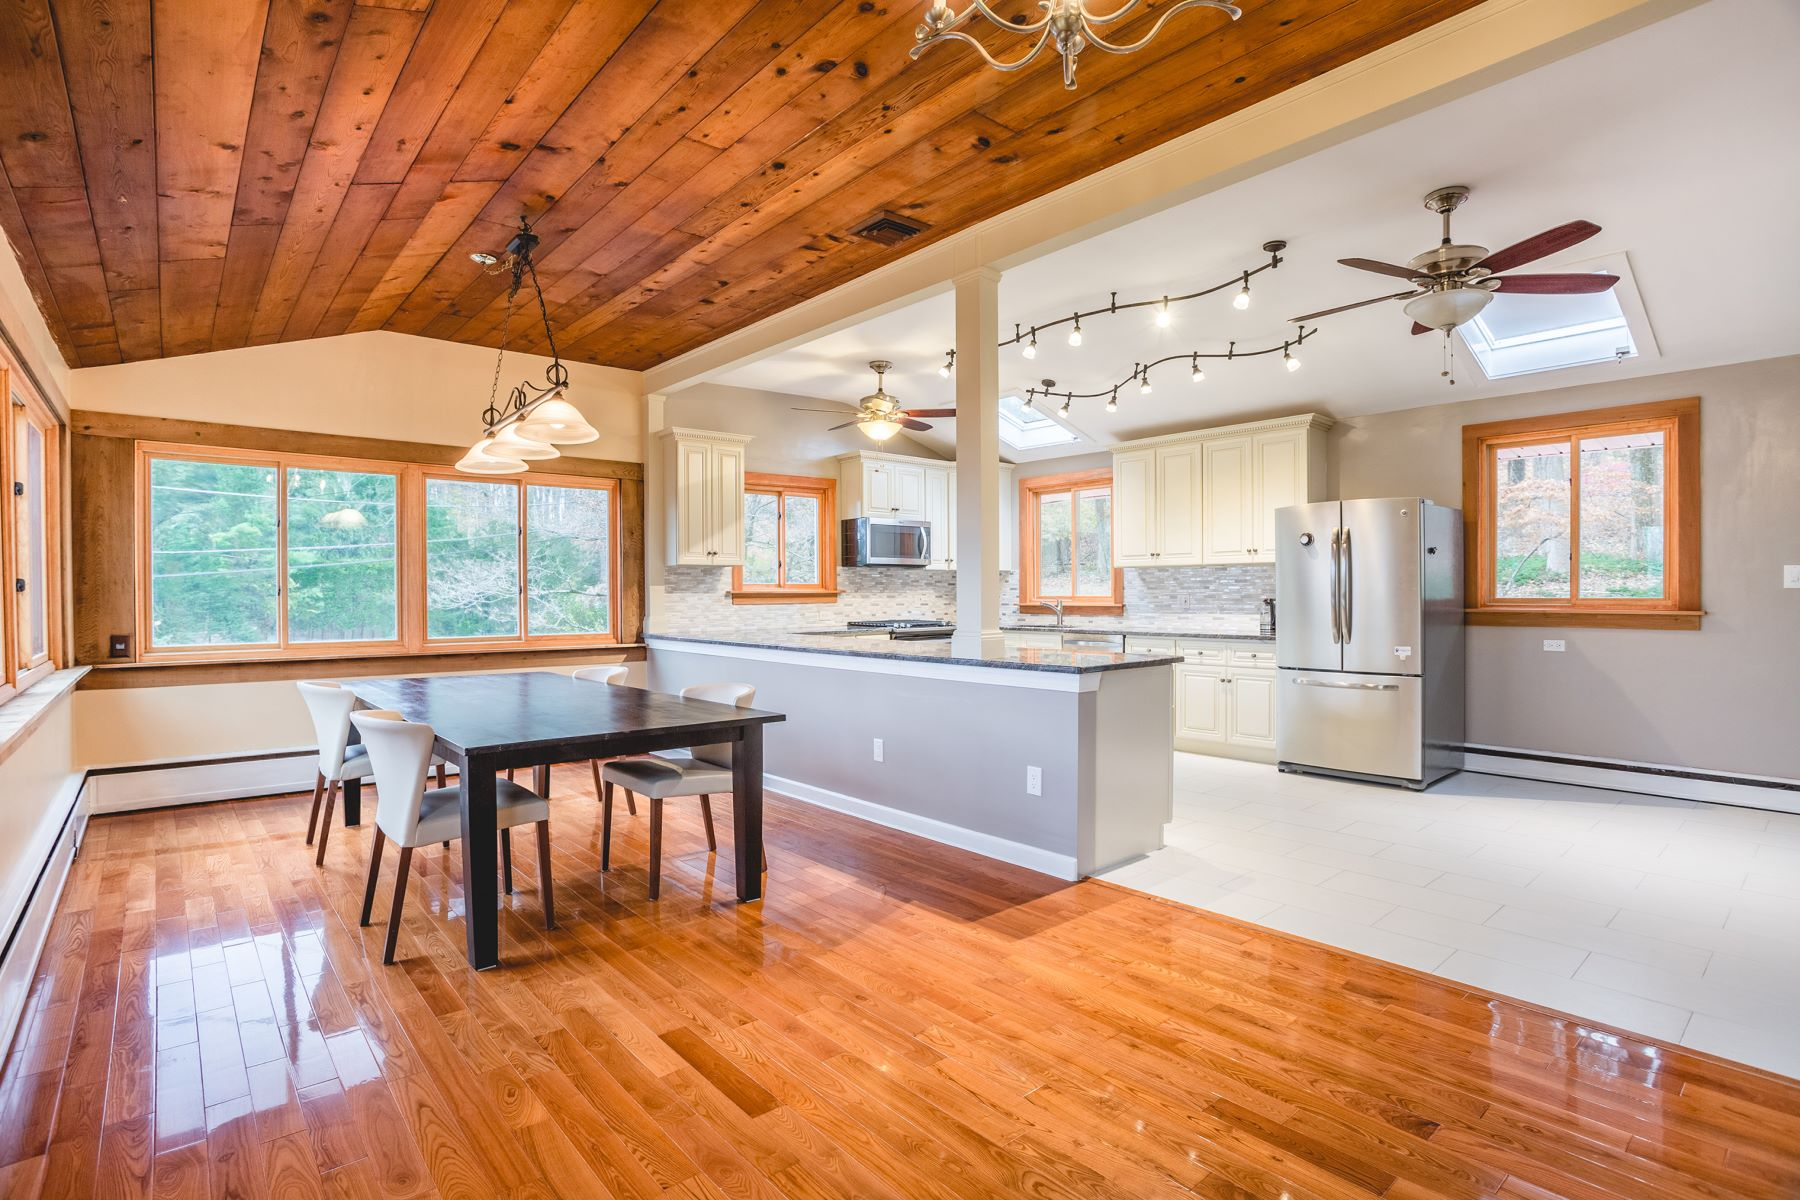 Single Family Home for Sale at 11 Solebury Mountain Rd New Hope, Pennsylvania, 18938 United States